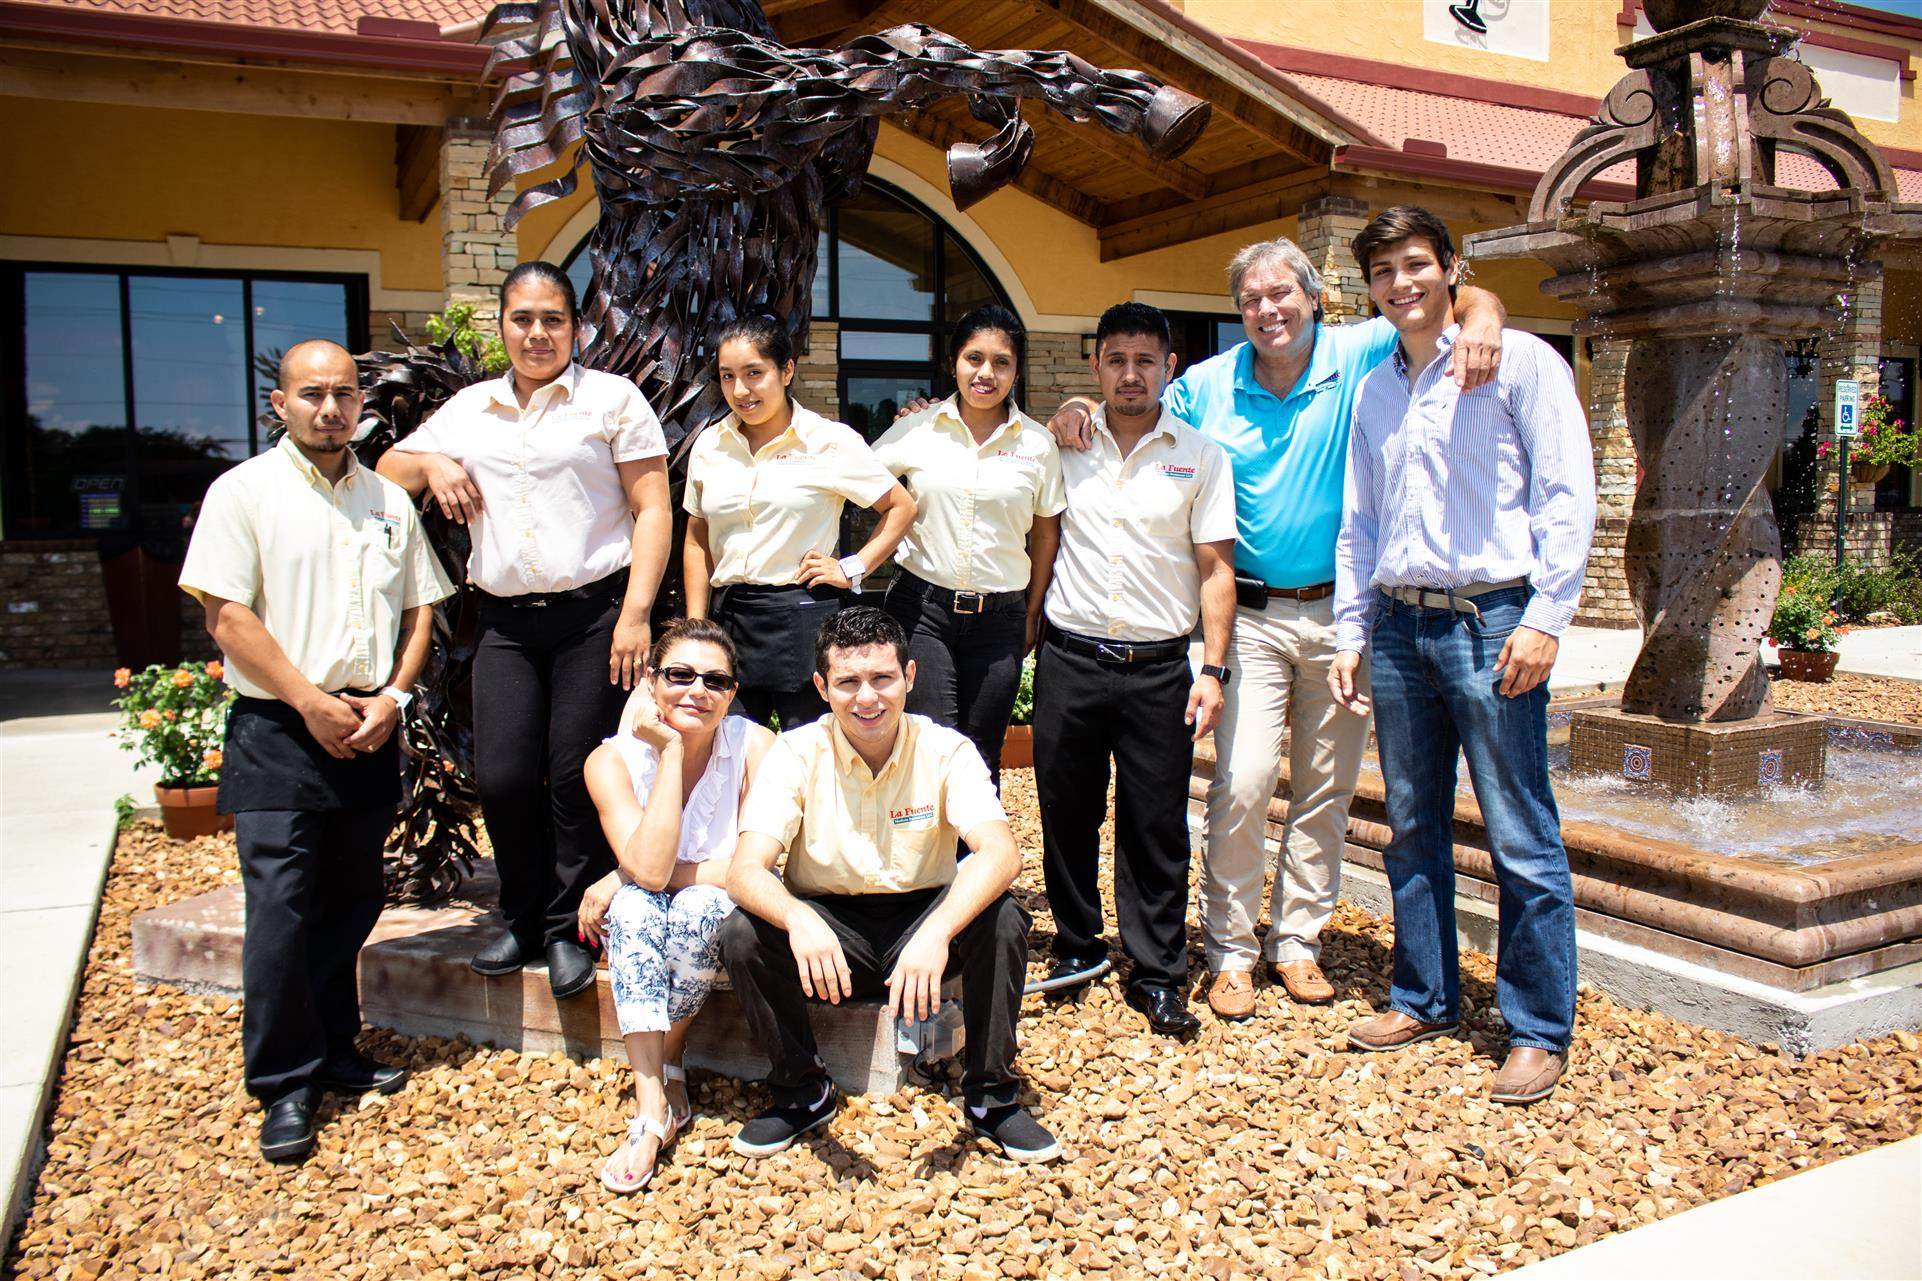 la fuente mexican restaurant staff taking a photo outside the establishment